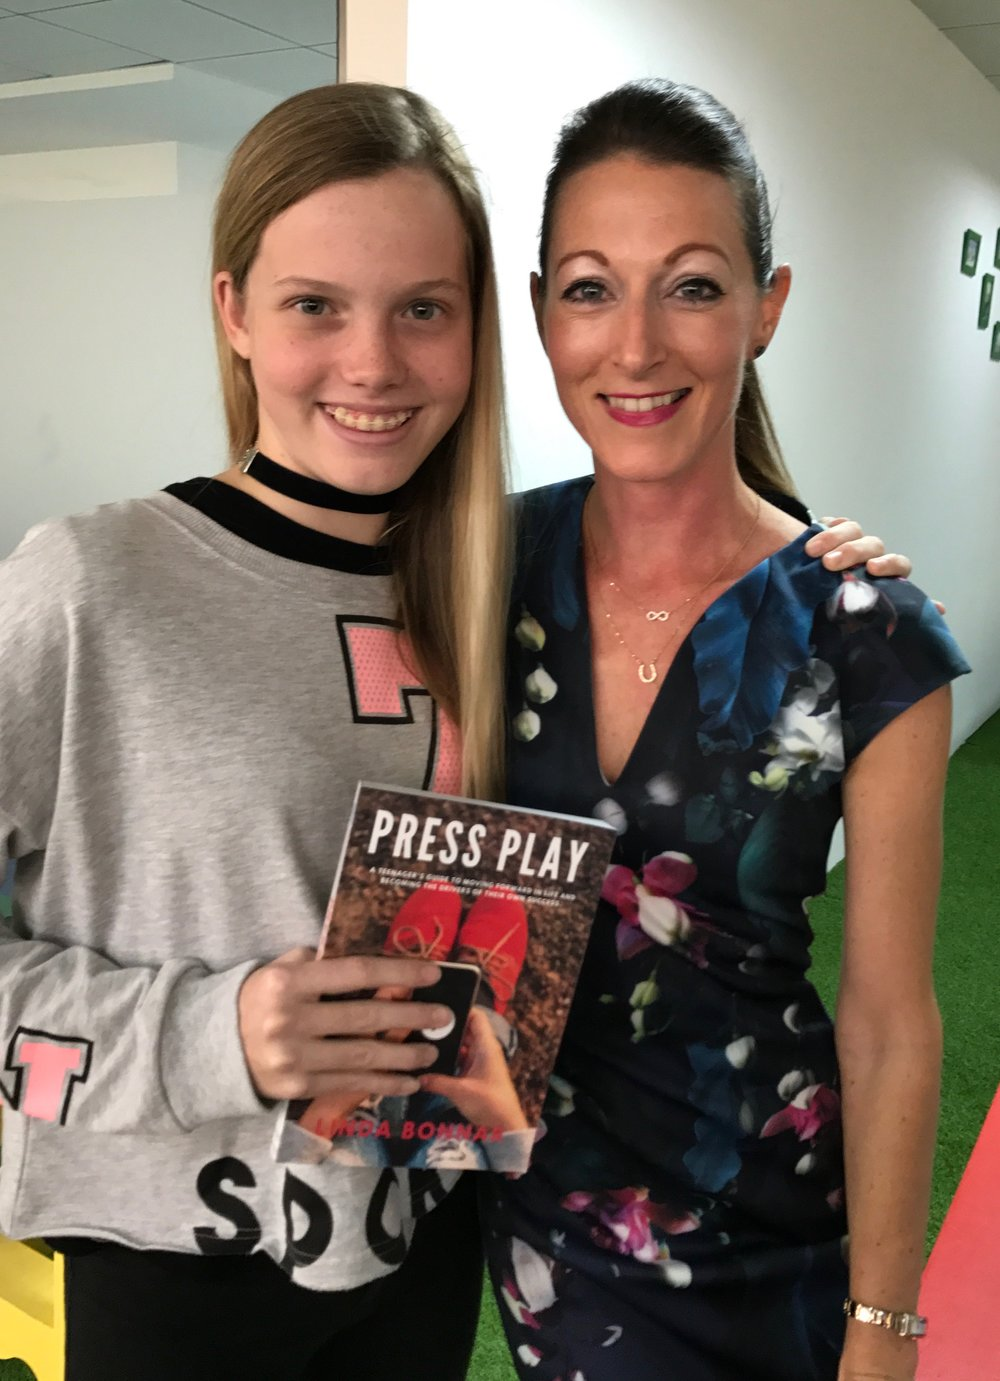 Linda Bonnar - Linda is a school teacher and life-coach who really cares about children. Linda has recently launched a coaching book for teenagers along with a 30-day journal.More about Linda HERE